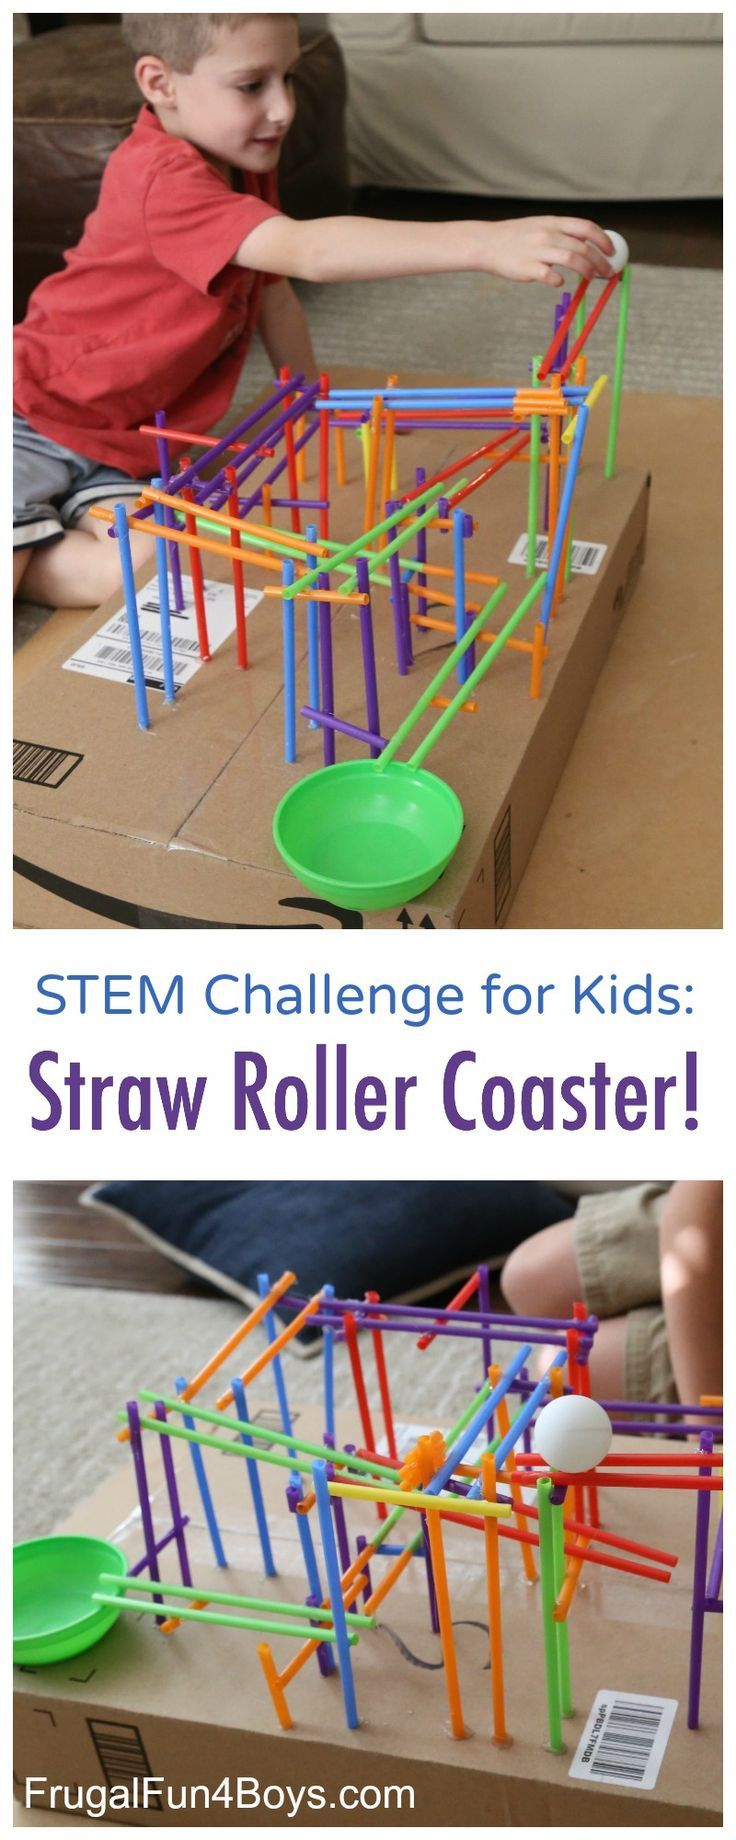 Engineering Project for Kids: Build a Straw Roller Coaster! Use straws to create a track that a ping pong ball will roll on. Fun STEM challenge for kids! More